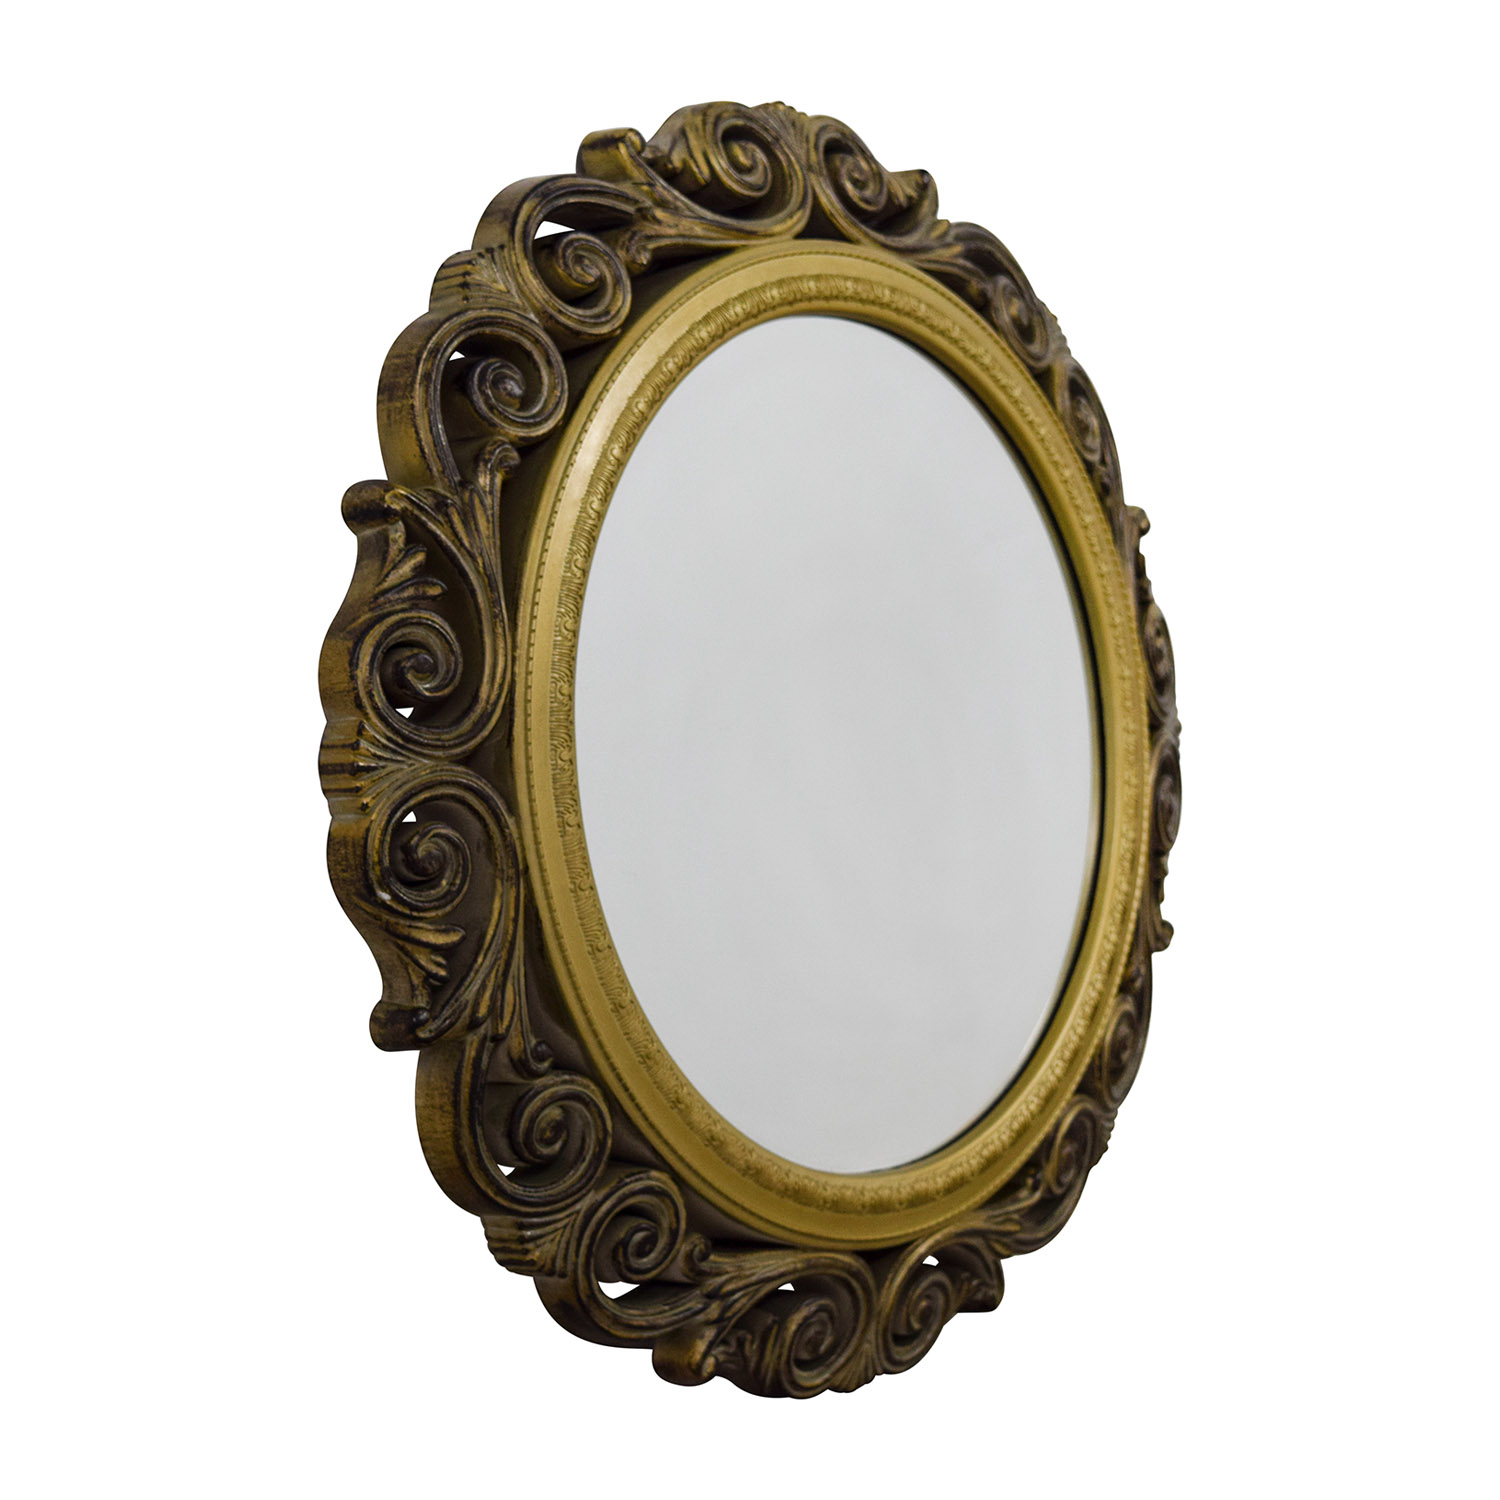 Buy Round Mirror 80 Off Gold Scrolled Frame Round Wall Mirror Decor